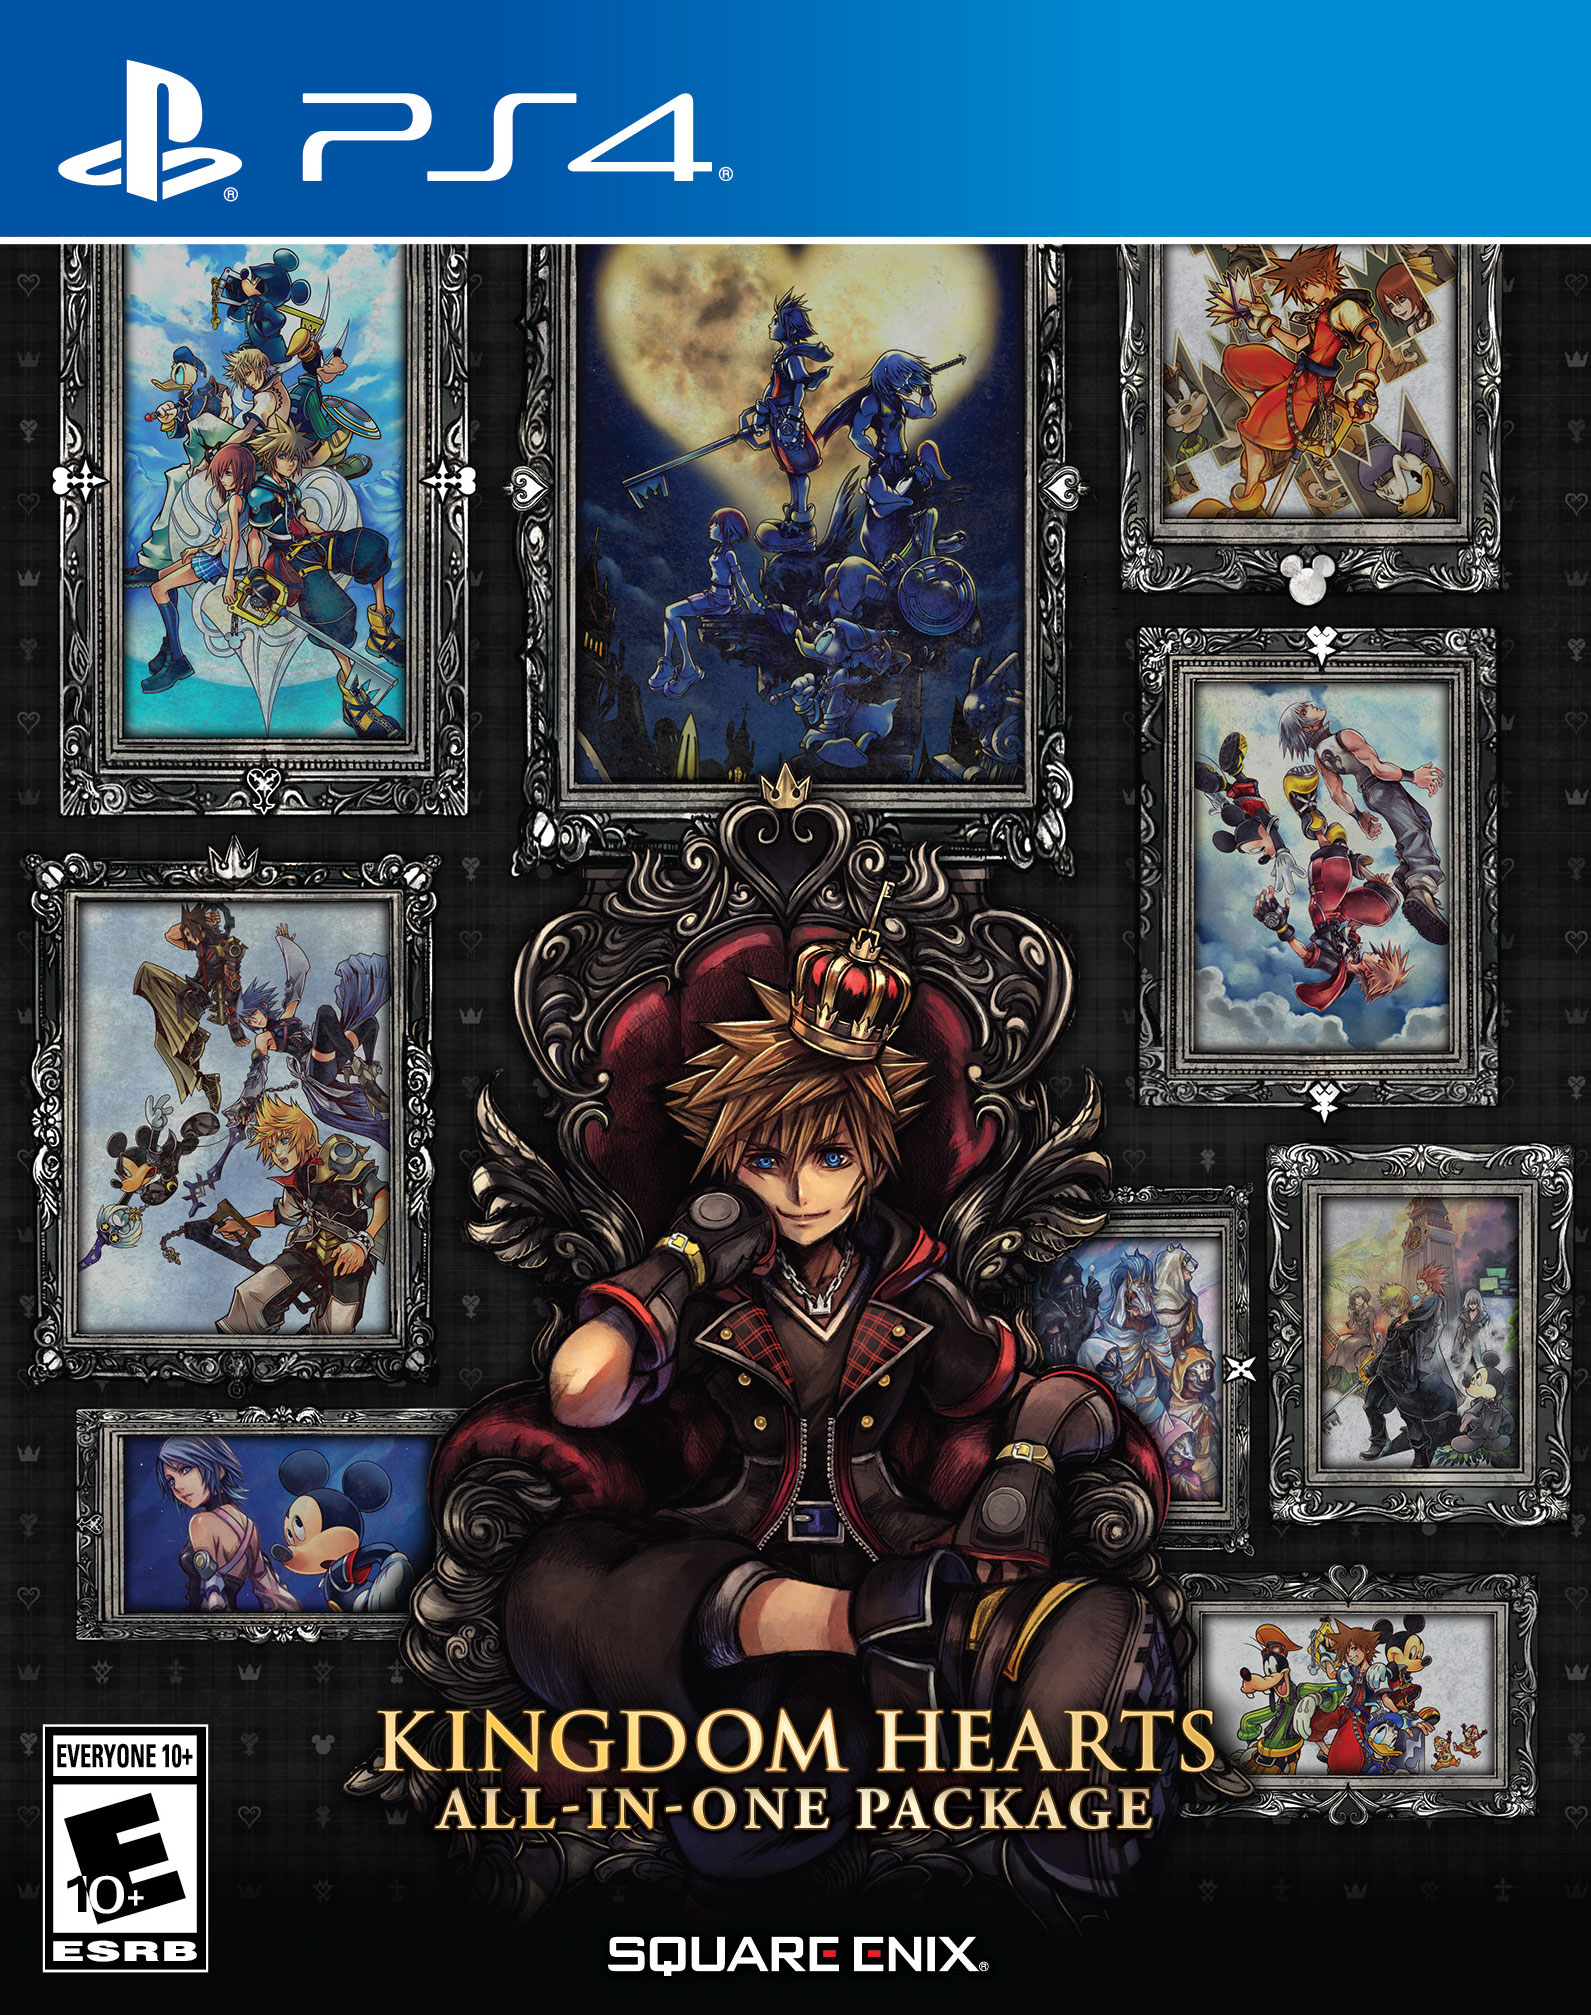 KINGDOM HEARTS All-in-One Package, Square Enix, PlayStation 4, 662248923789 (Walmart)